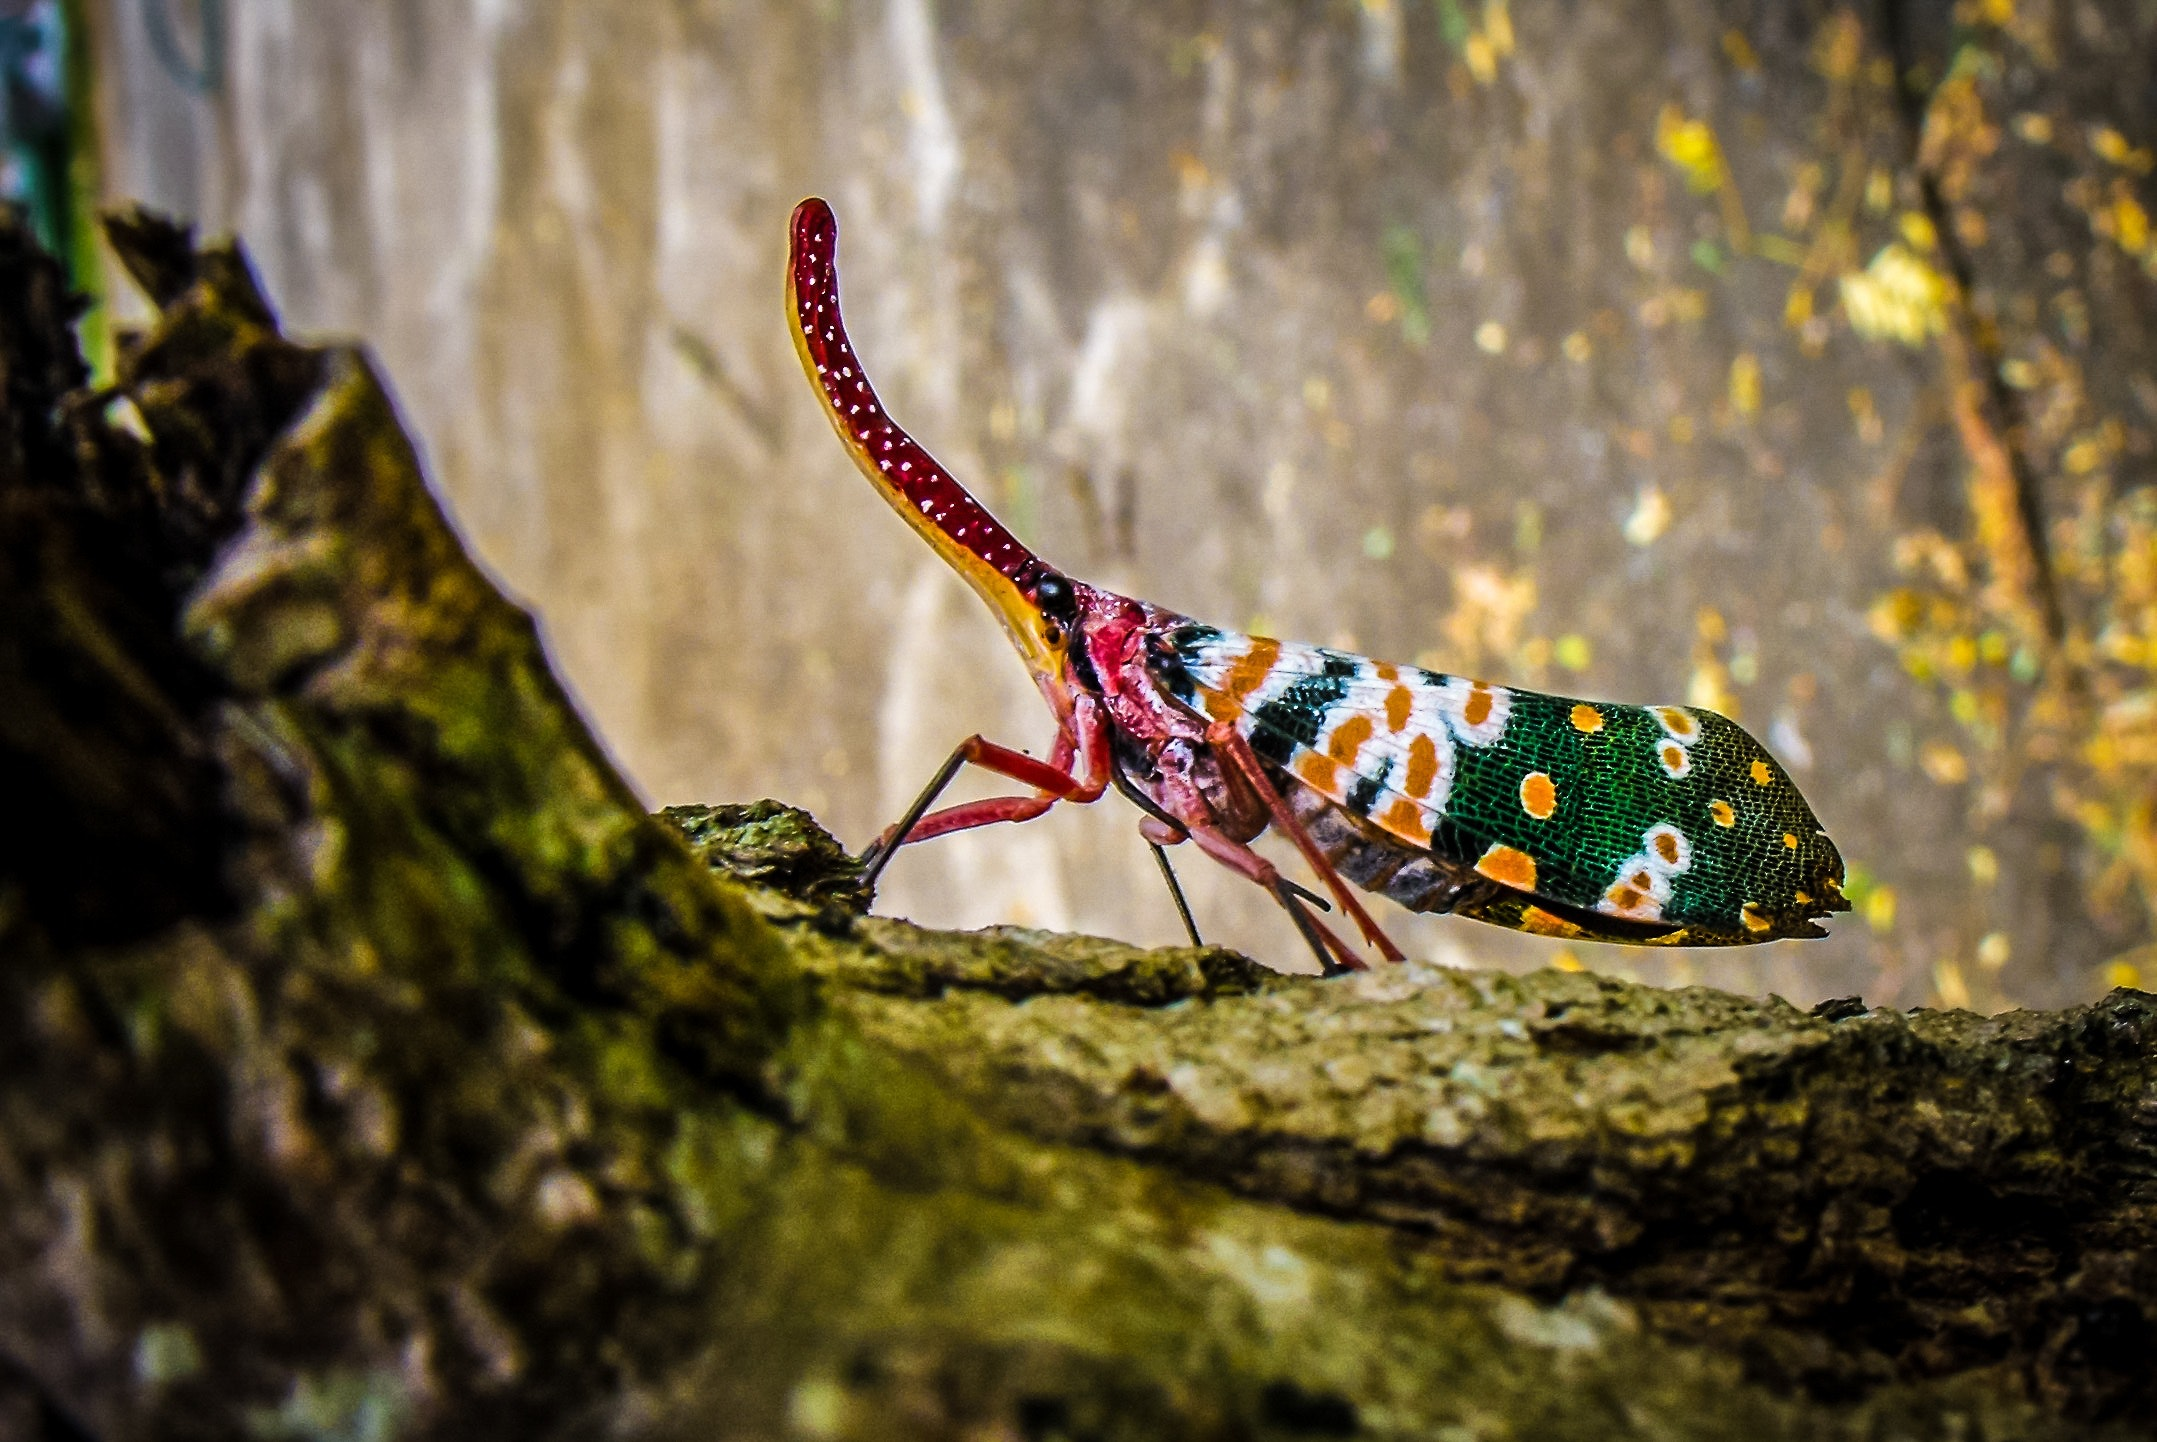 Green yellow and white insect on green tree trunk photo